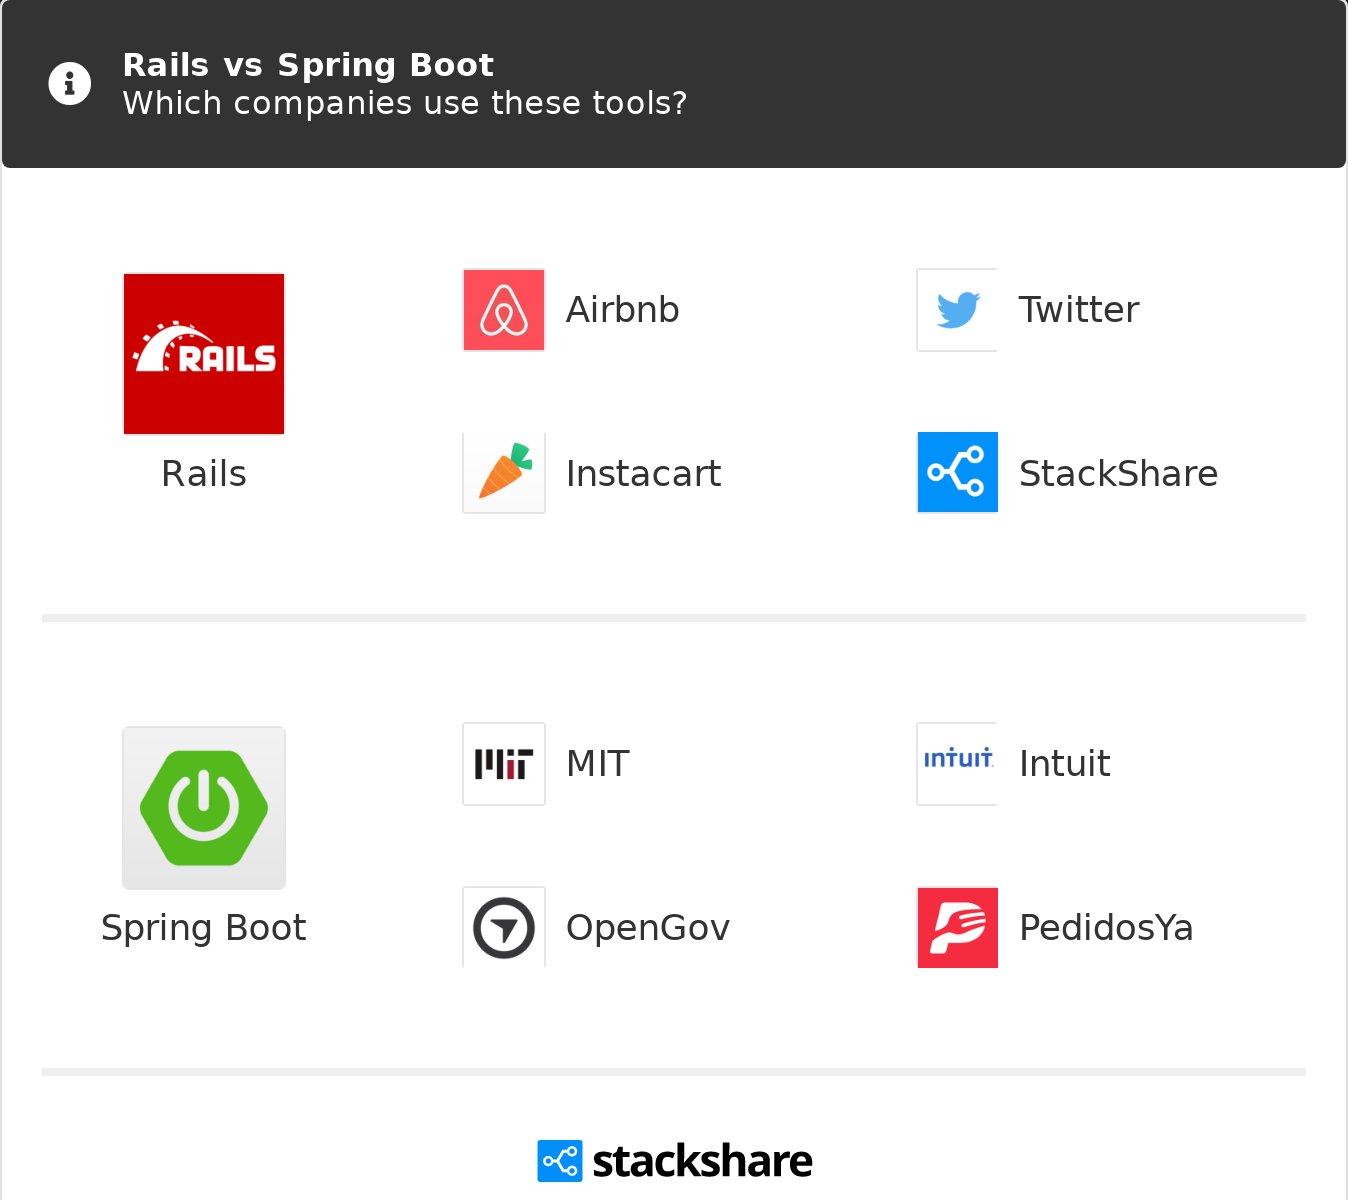 Rails vs Spring Boot | What are the differences?